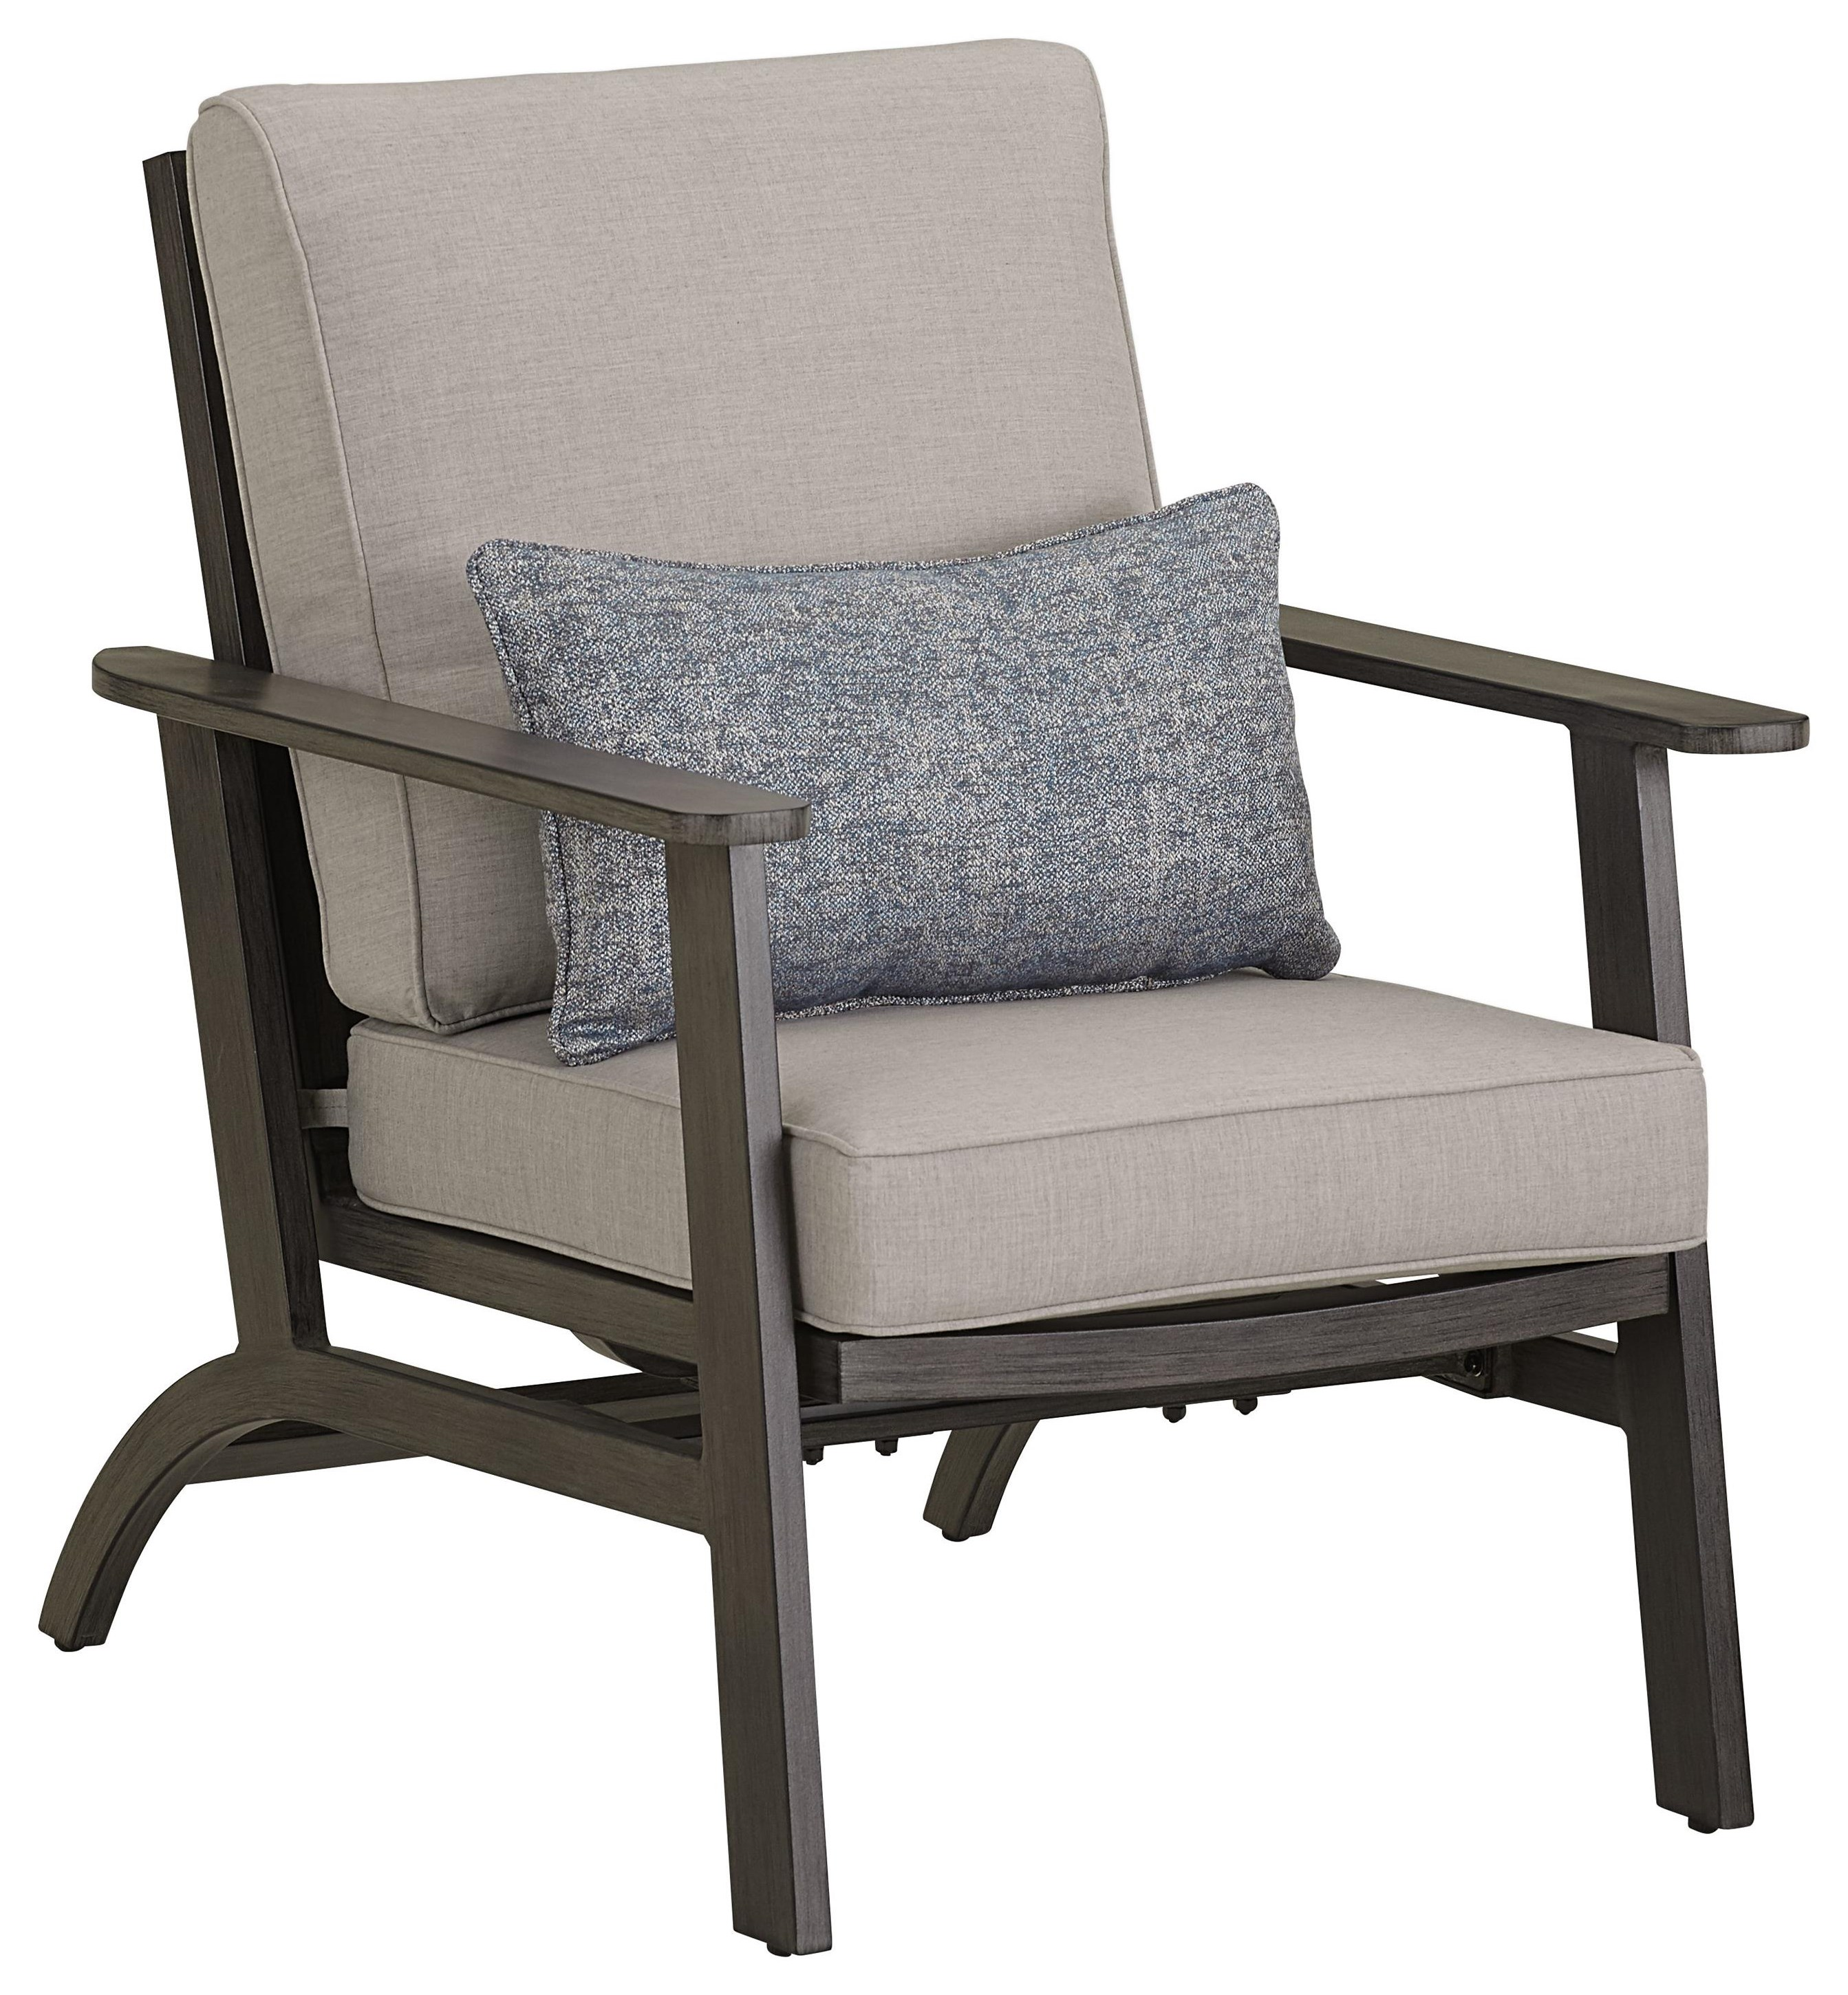 Adison Motion Lounge Chair by Apricity Outdoor at Johnny Janosik